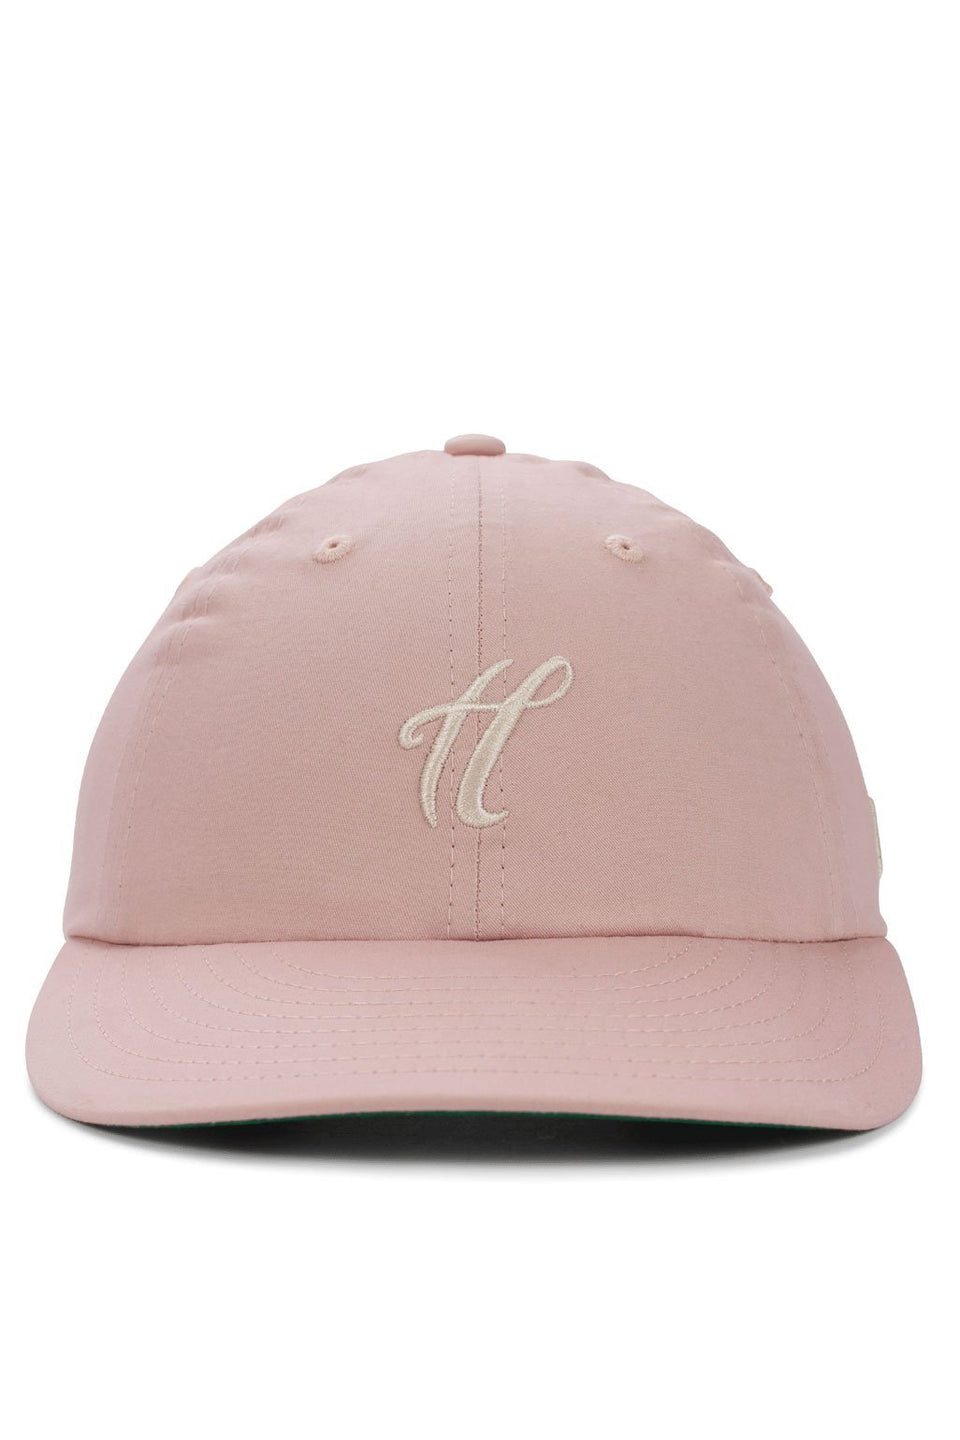 Ground Strapback-HEADWEAR-The Hundreds UK